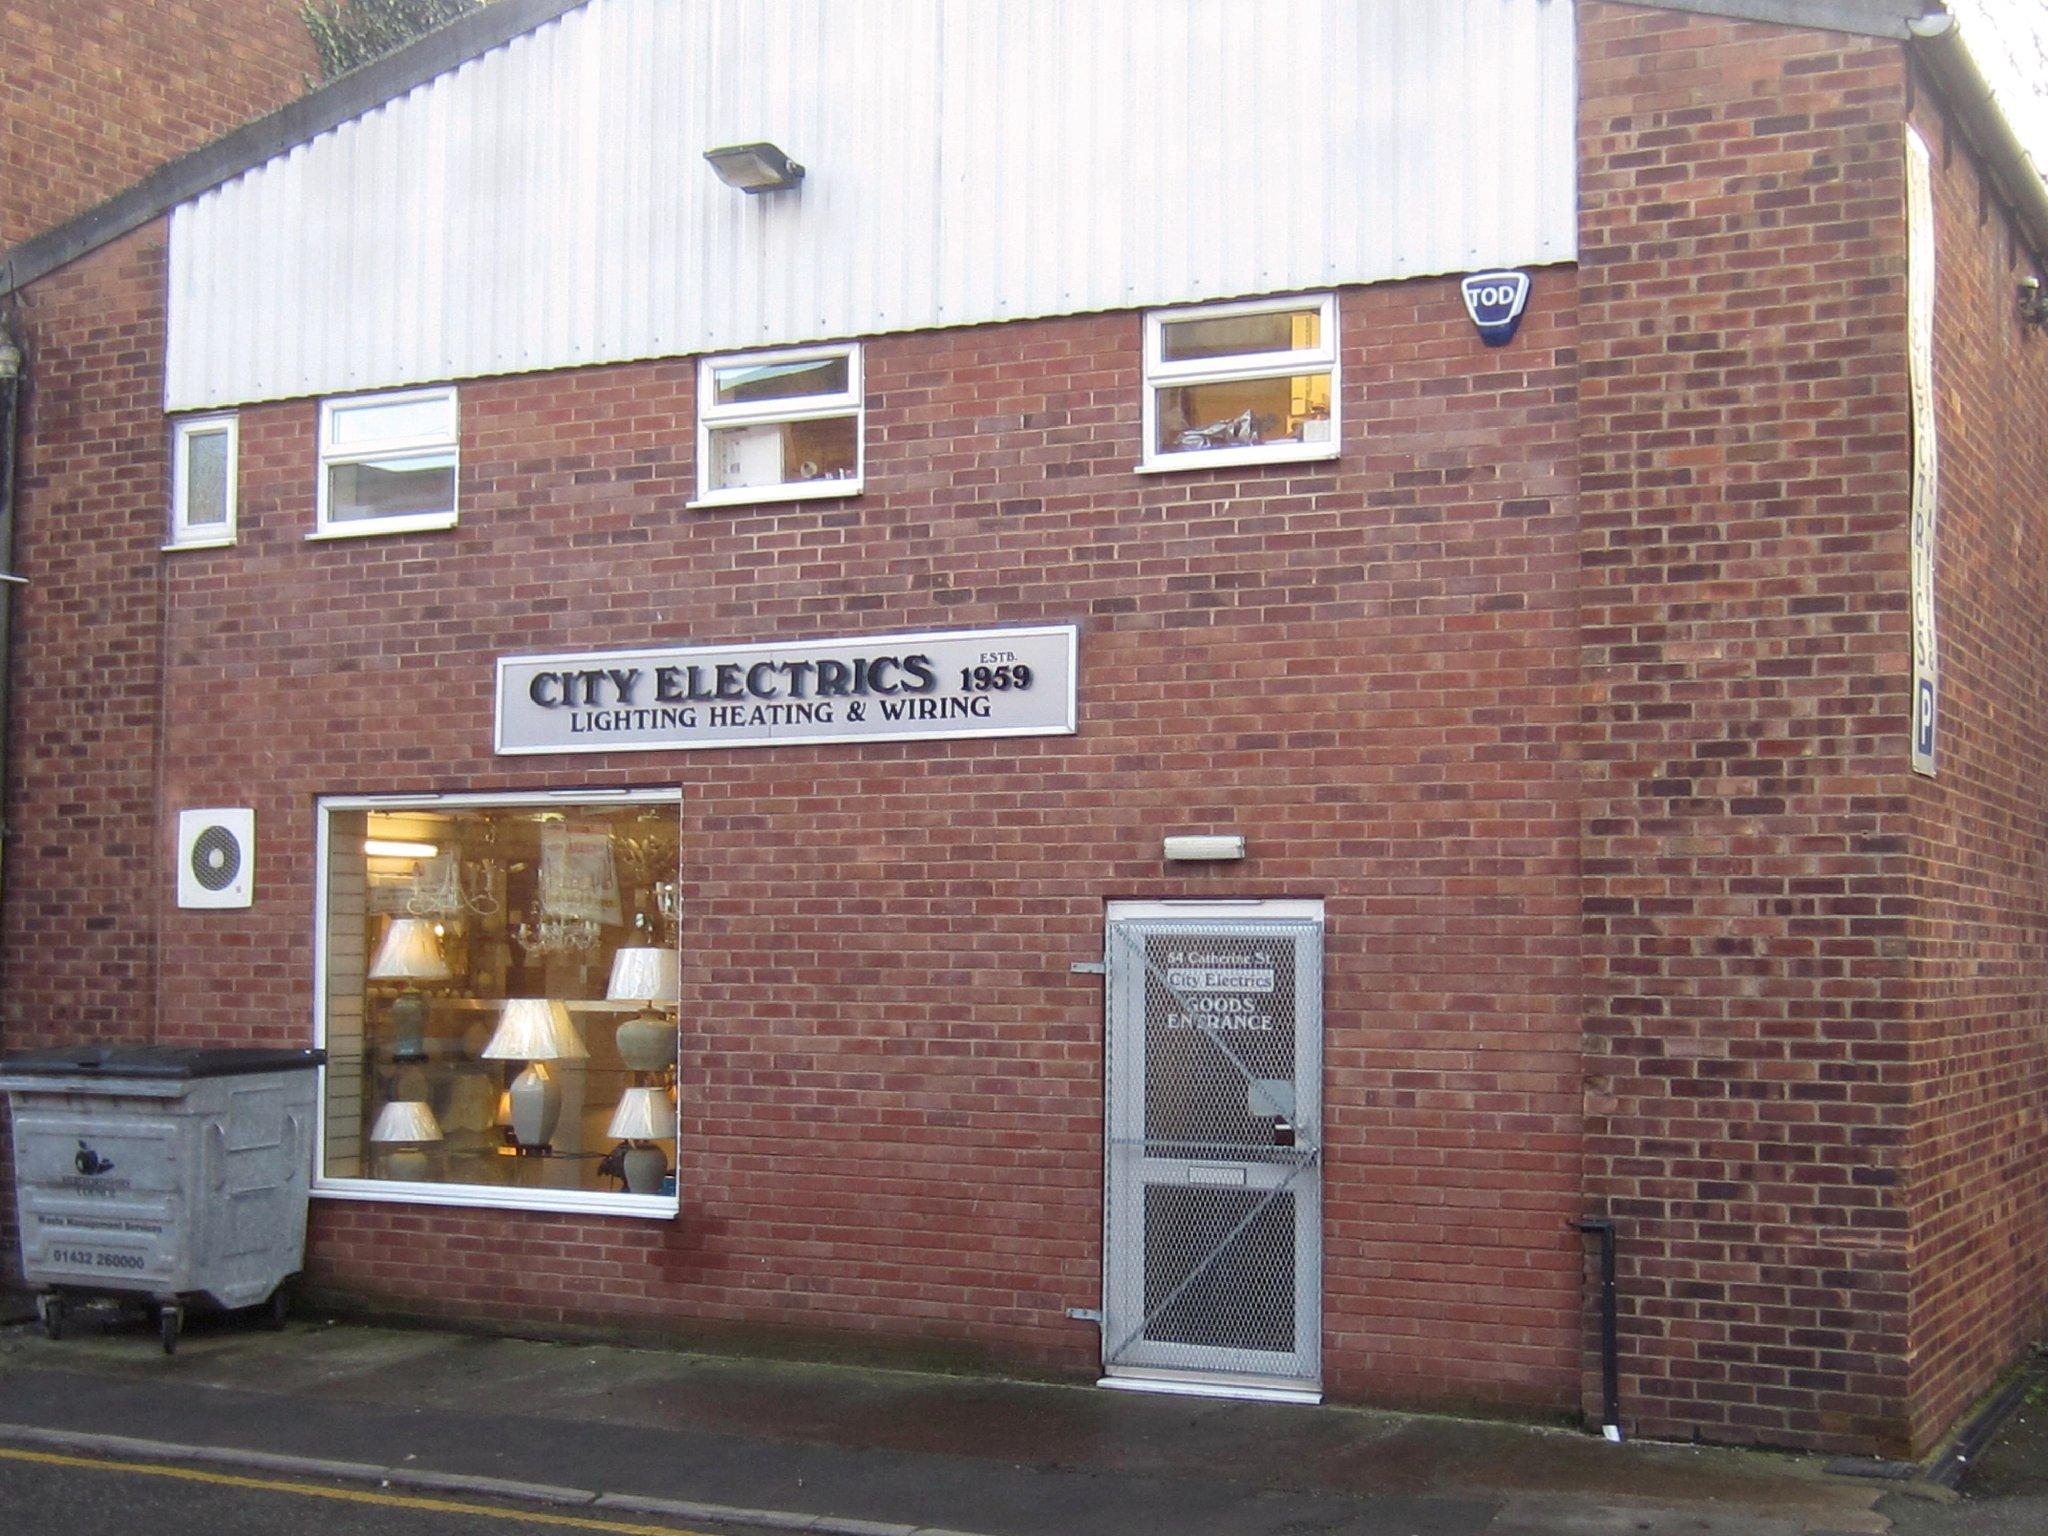 City electrics the lighting shop lighting retailers in for Outlet herford